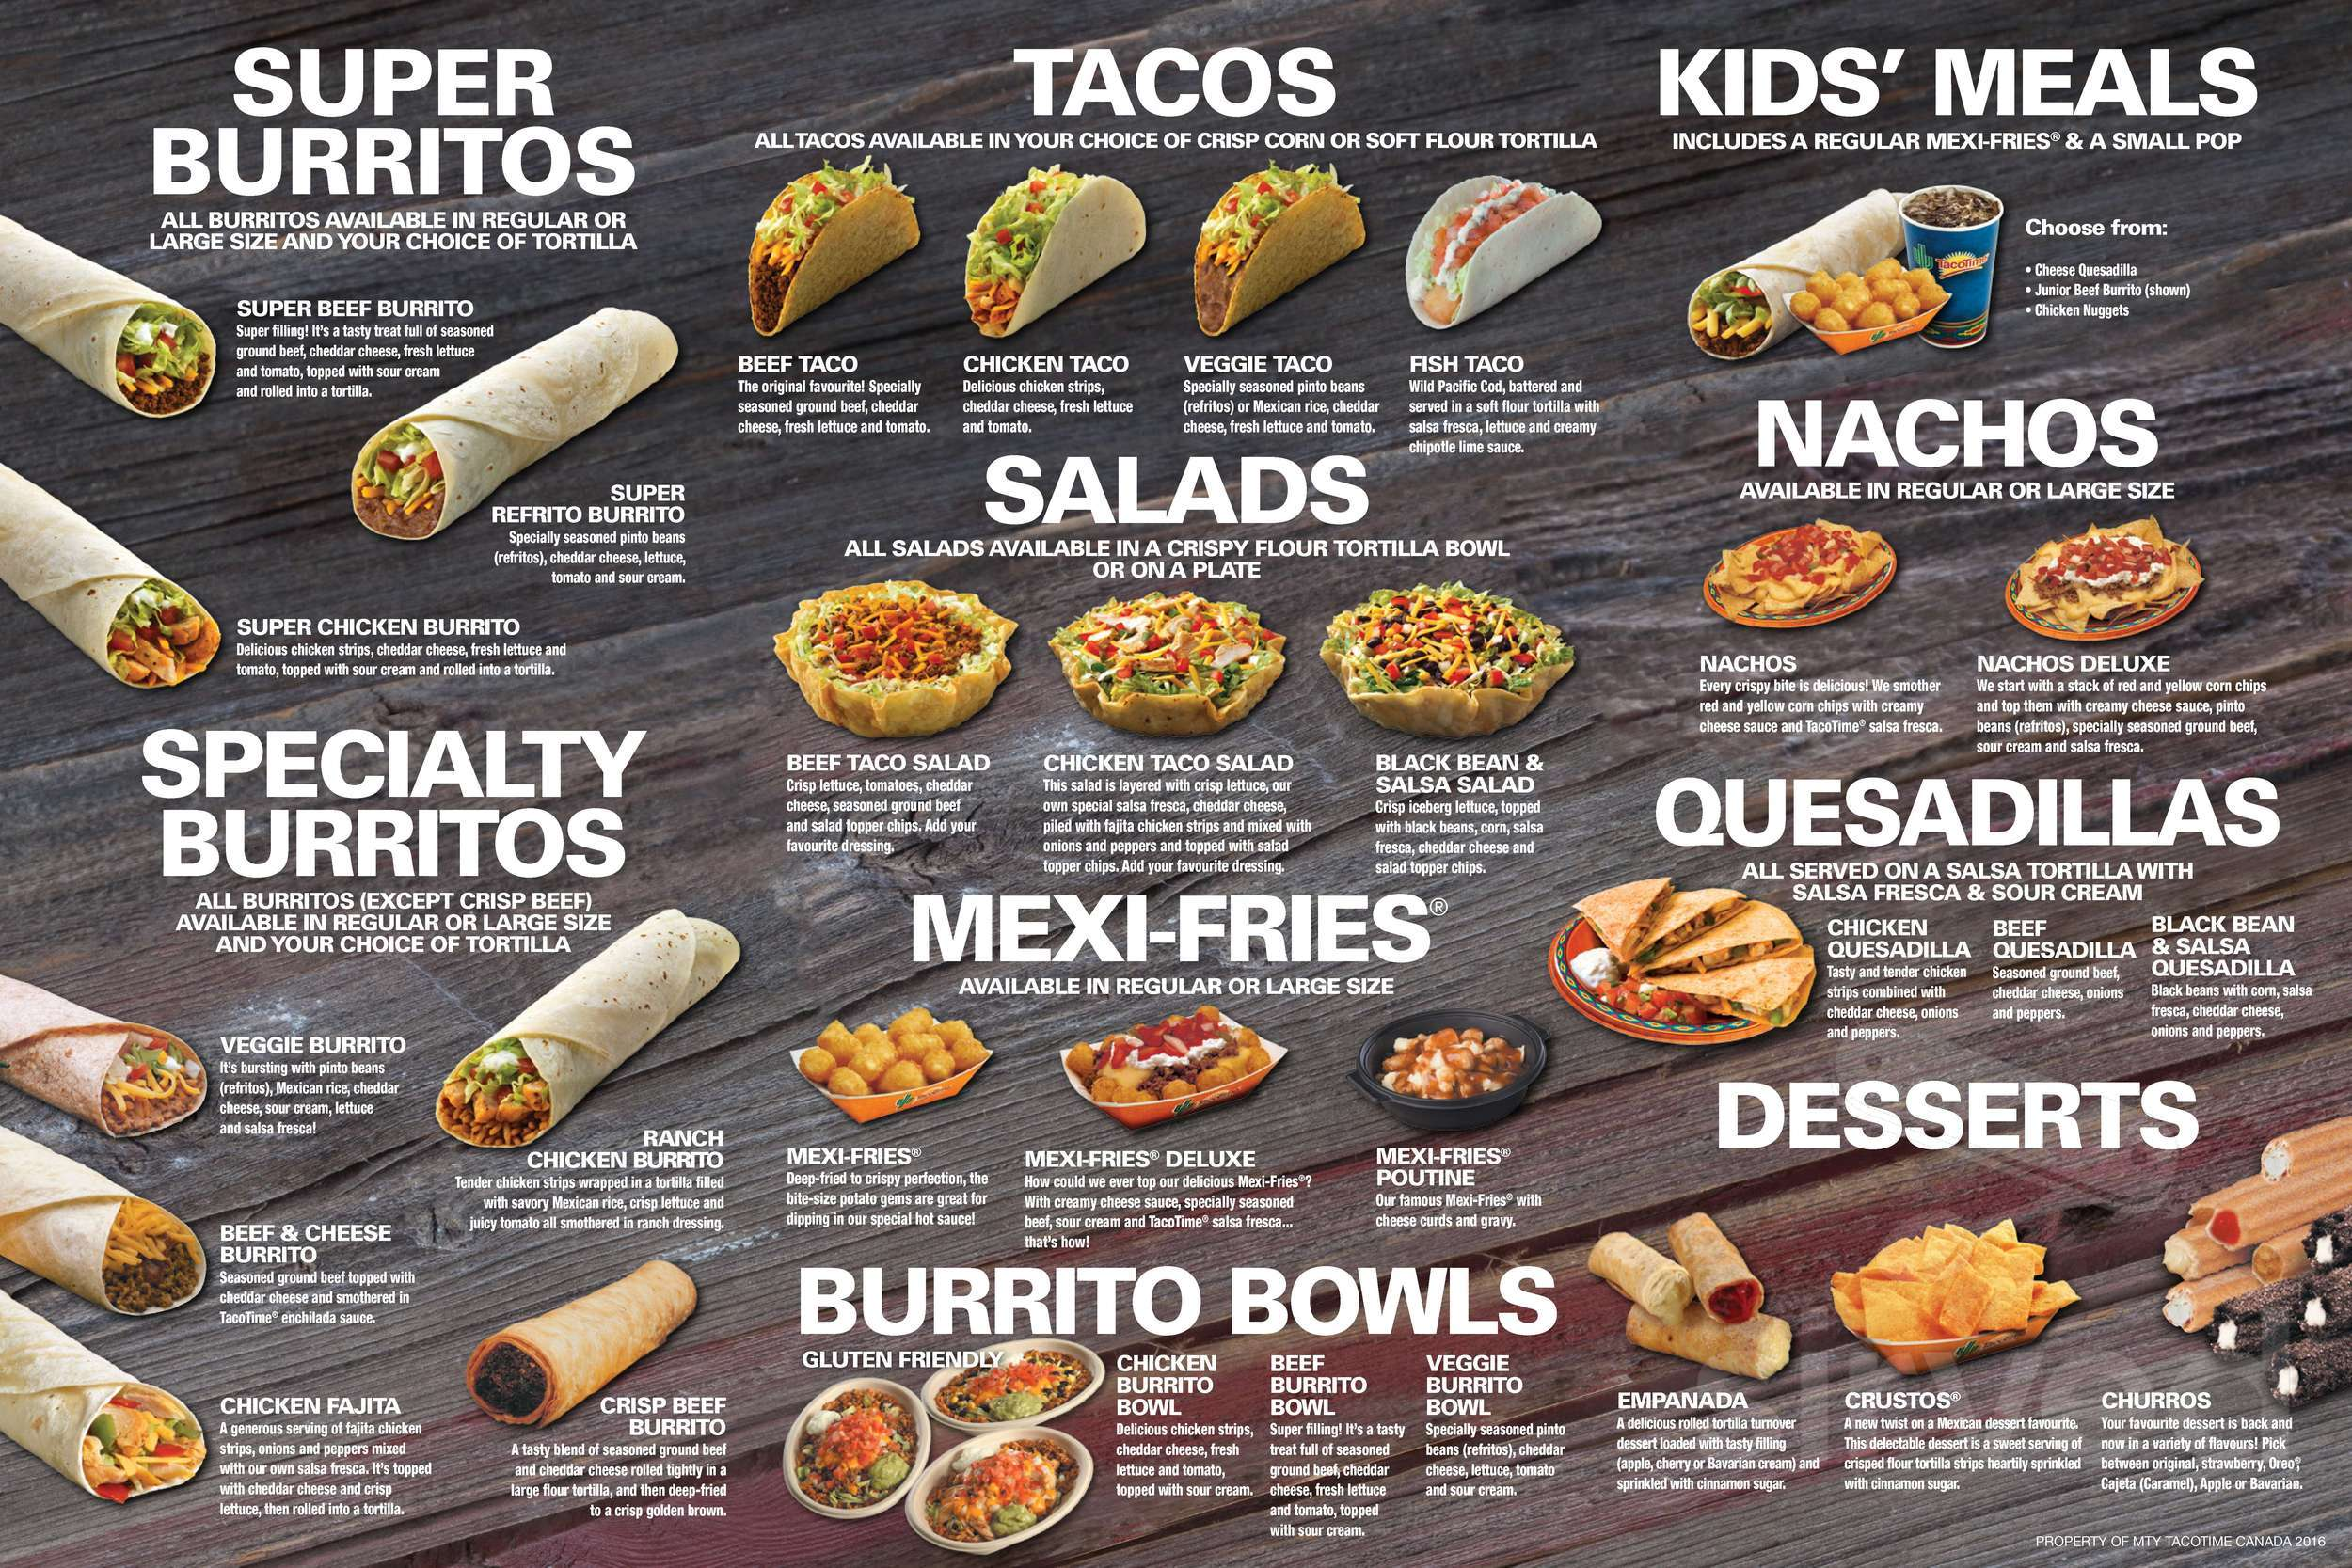 Tacotime Memorial Ave Menu In Thunder Bay Ontario Canada 450 memorial avenue, thunder bay (on), p7b 3y7, canada. sirved